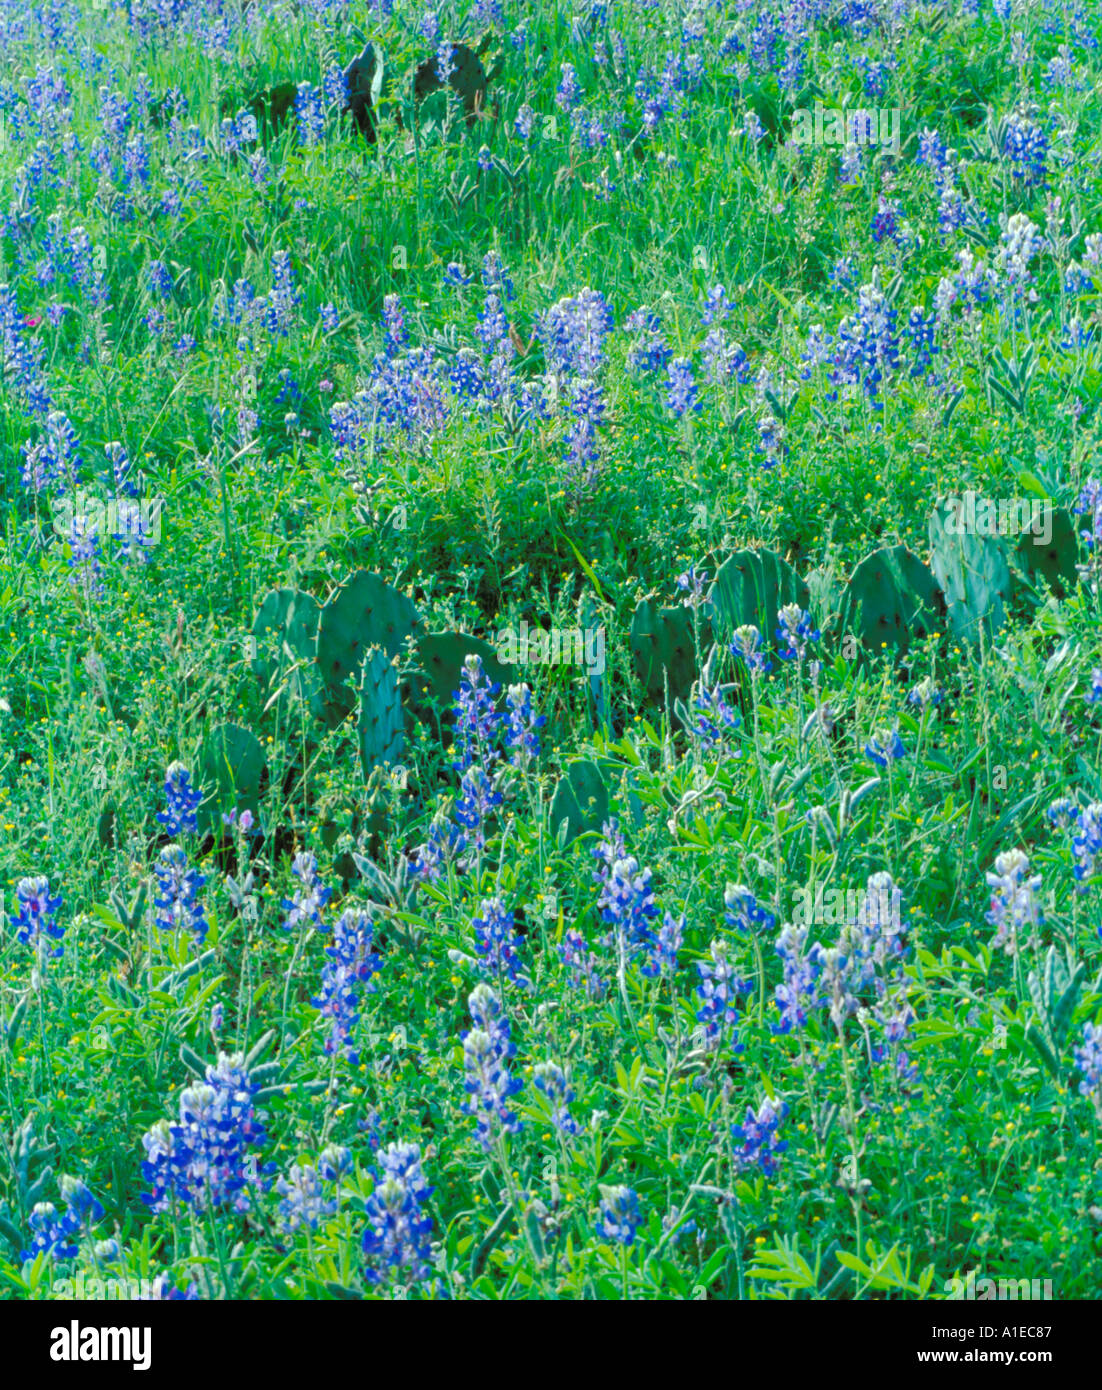 bluebells-in-texas-hill-country-A1EC87.j